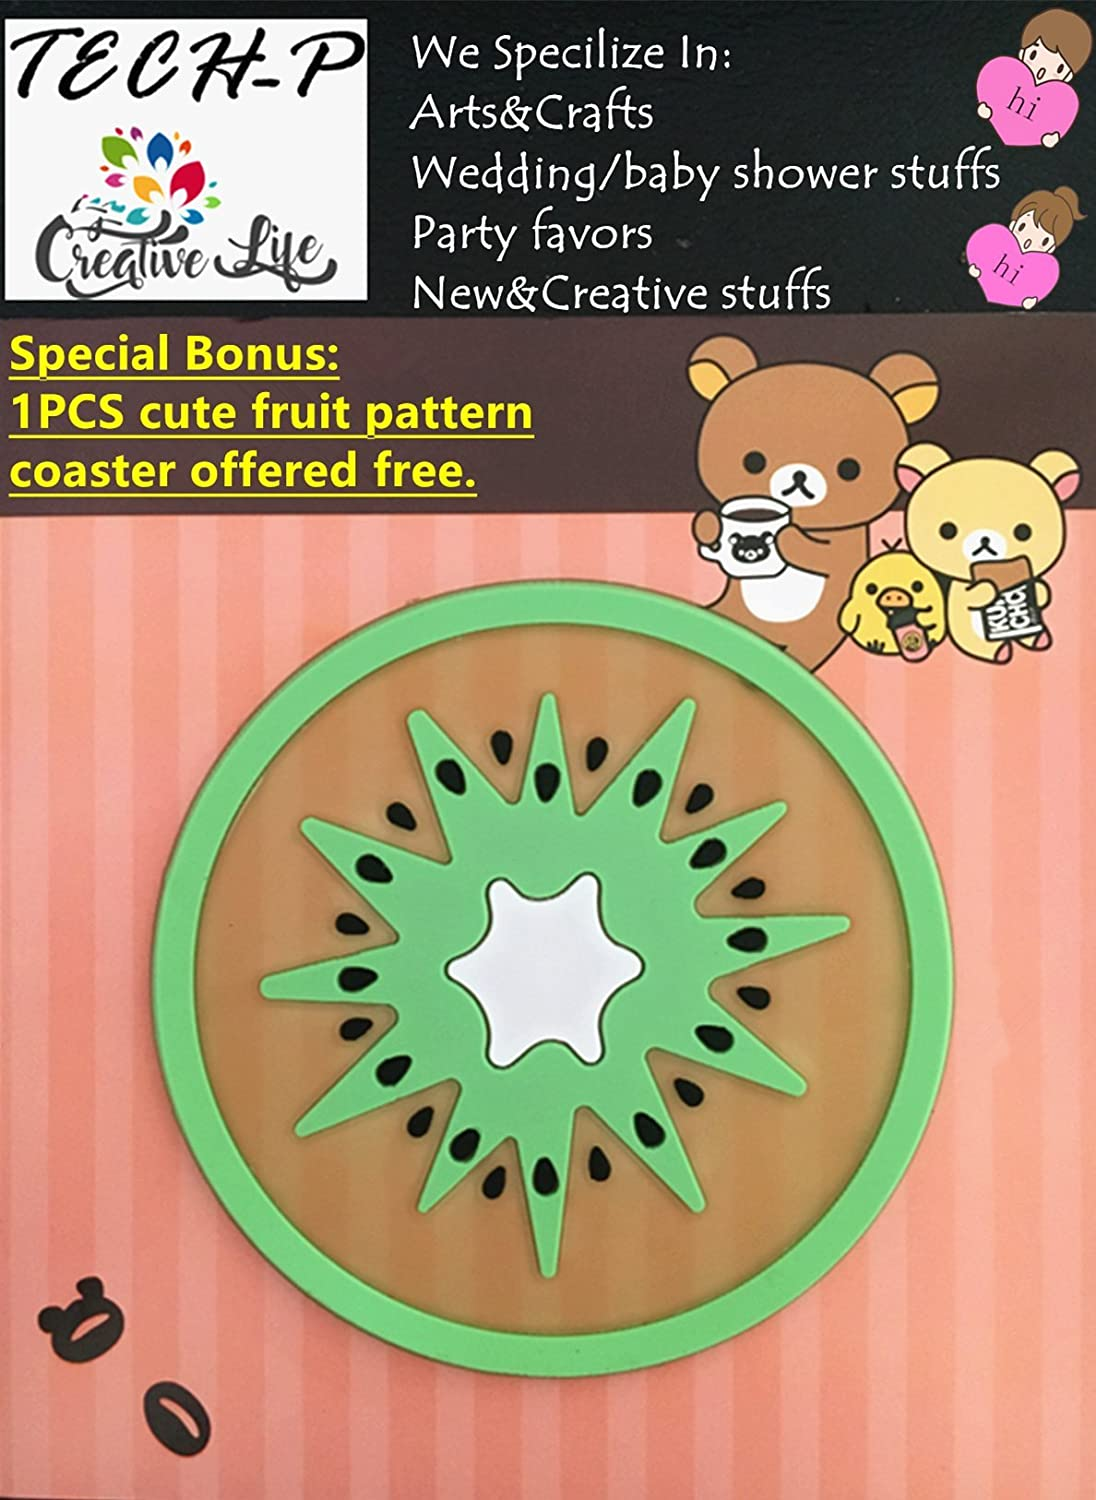 Circle Hand Press Album Cards Paper Craft Punch,Card Scrapbooking Engraving Kid Cut DIY Paper Craft Punch. 50mm TECH-P Creative Life 2- Inch